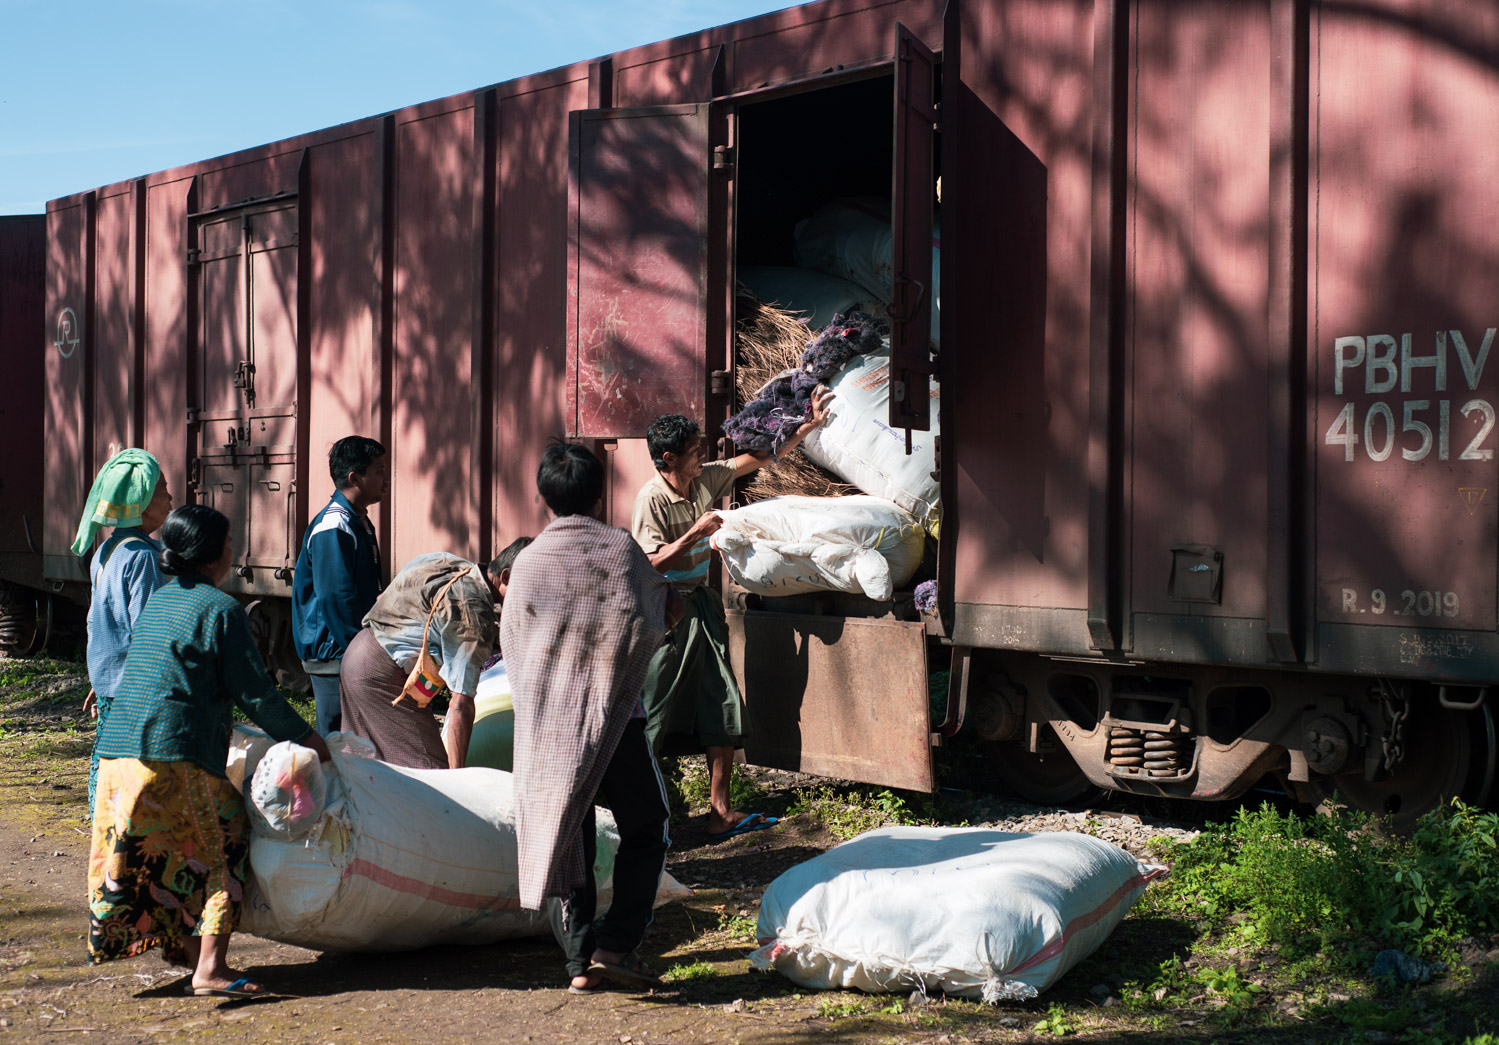 Unloading bags of straw from the Mandalay-Lashio train.